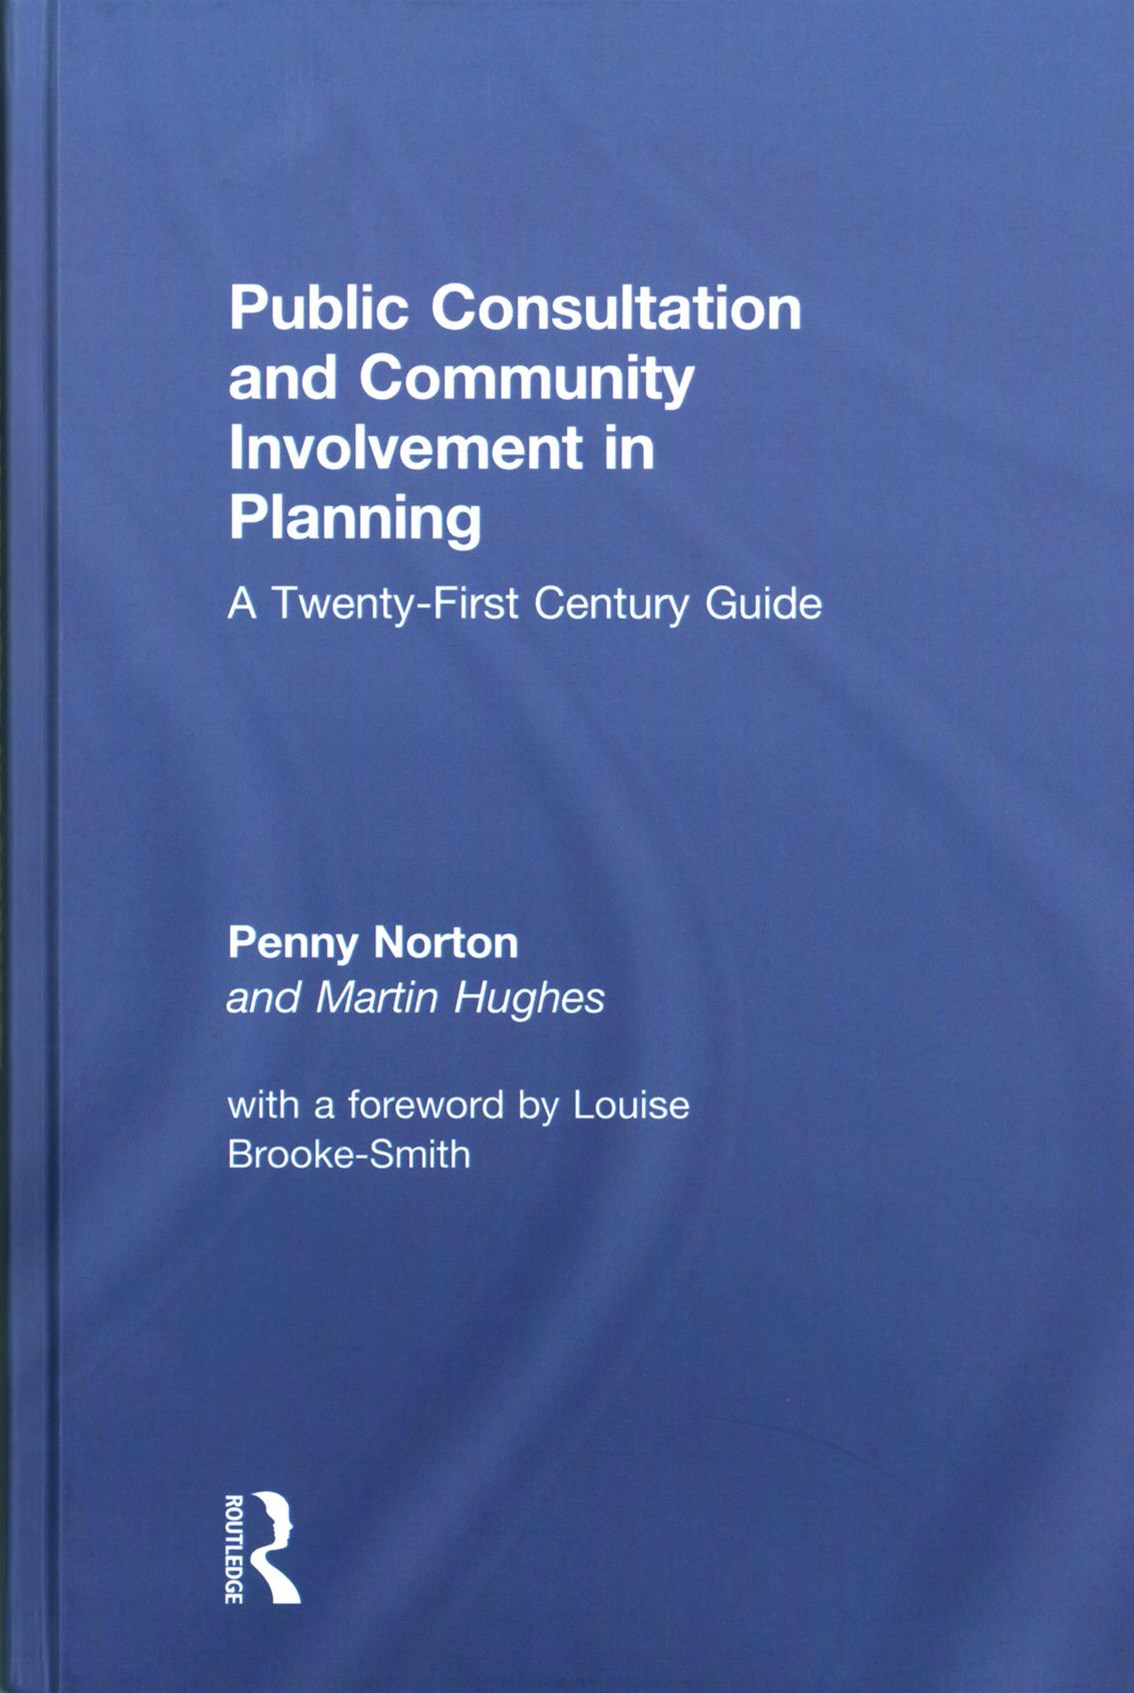 Public Consultation and Community Involvement in Planning